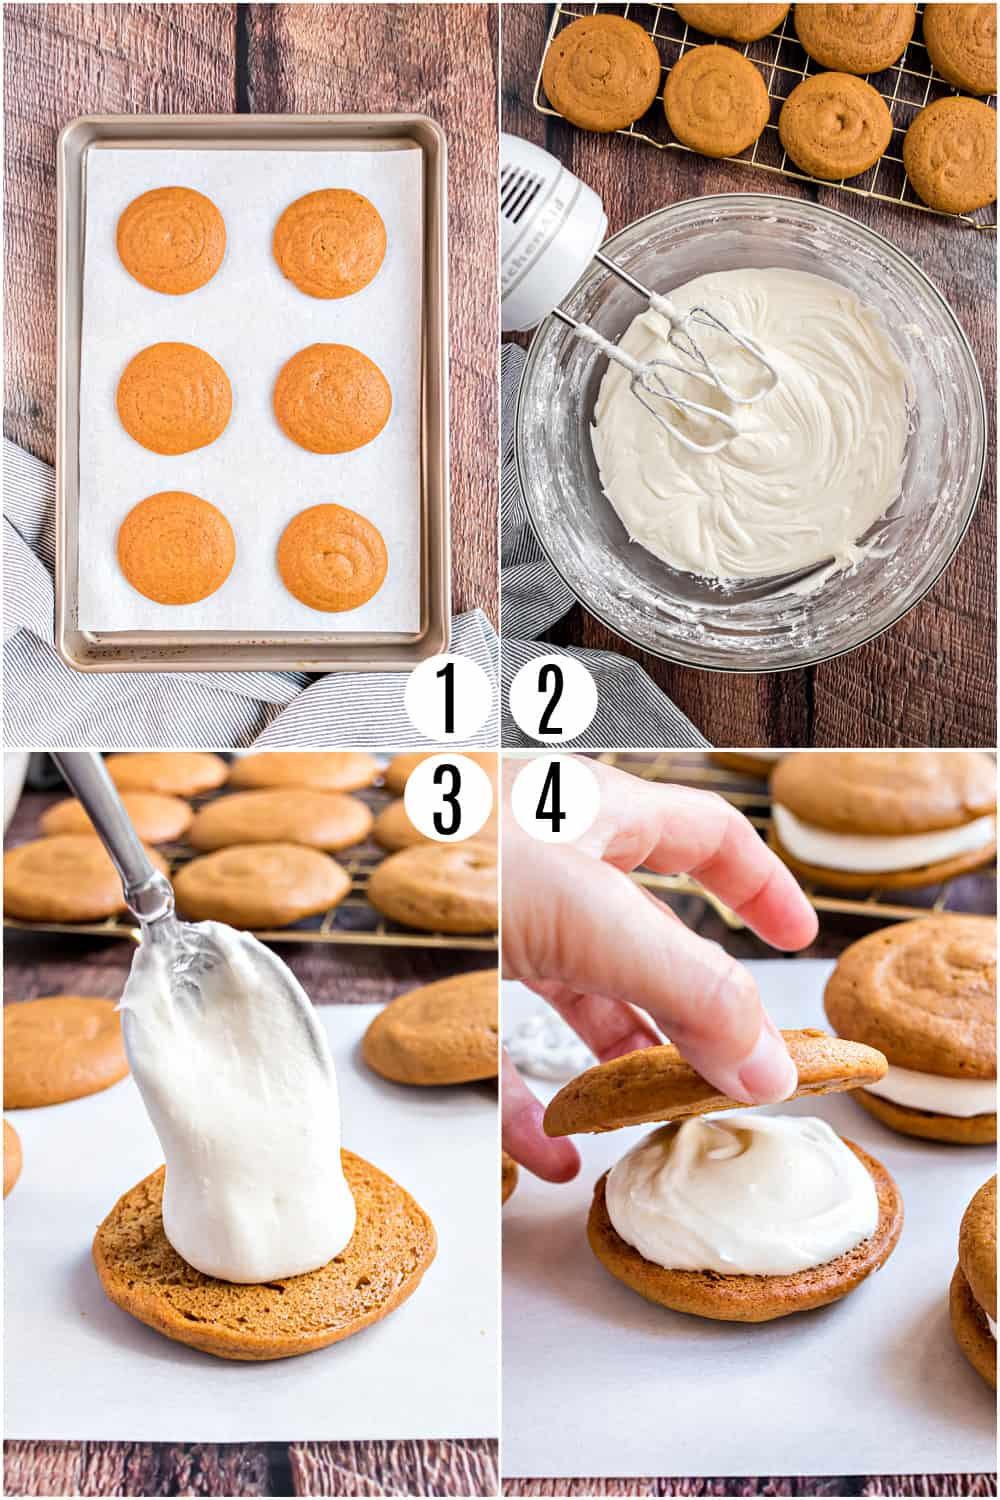 Step by step photos showing how to assemble pumpkin whoopie pies with cream cheese filling.